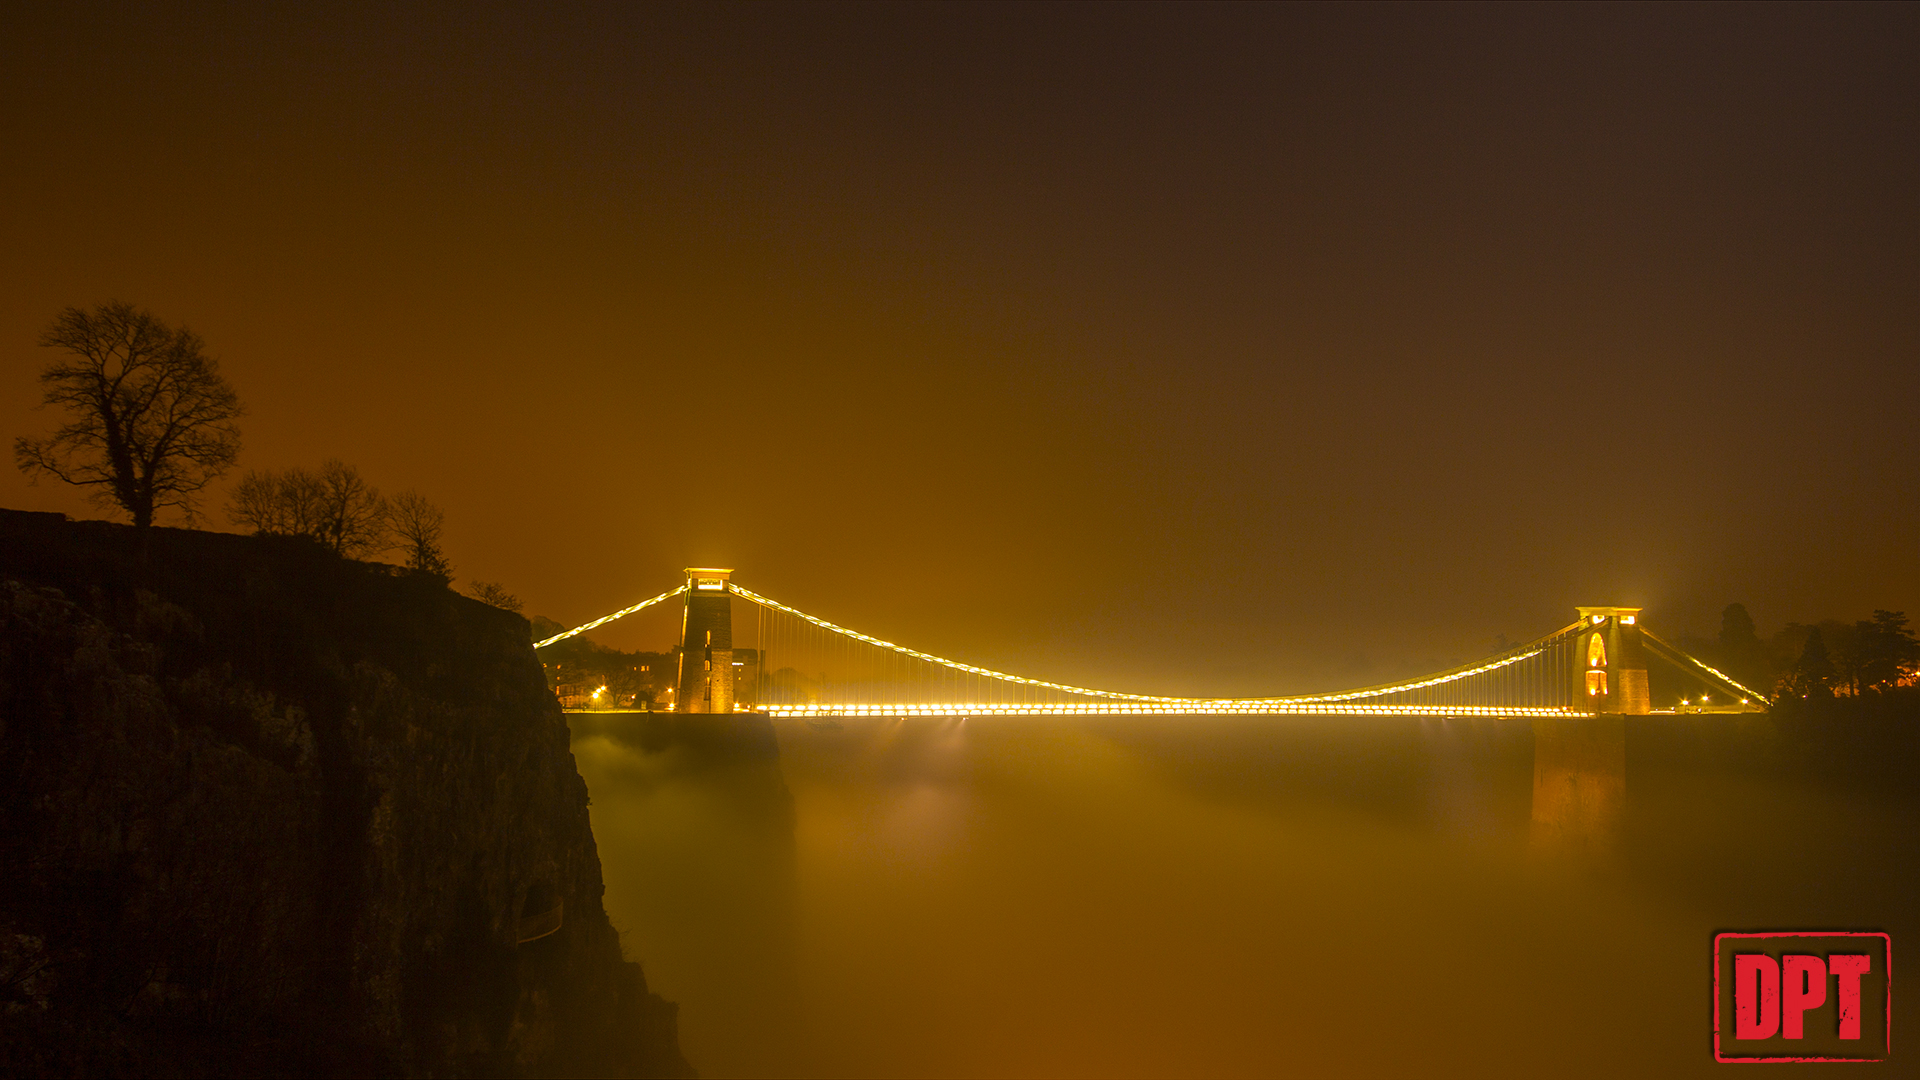 DPT - Clifton Suspension Bridge - Warm WB - 1080 - 1.3.jpg